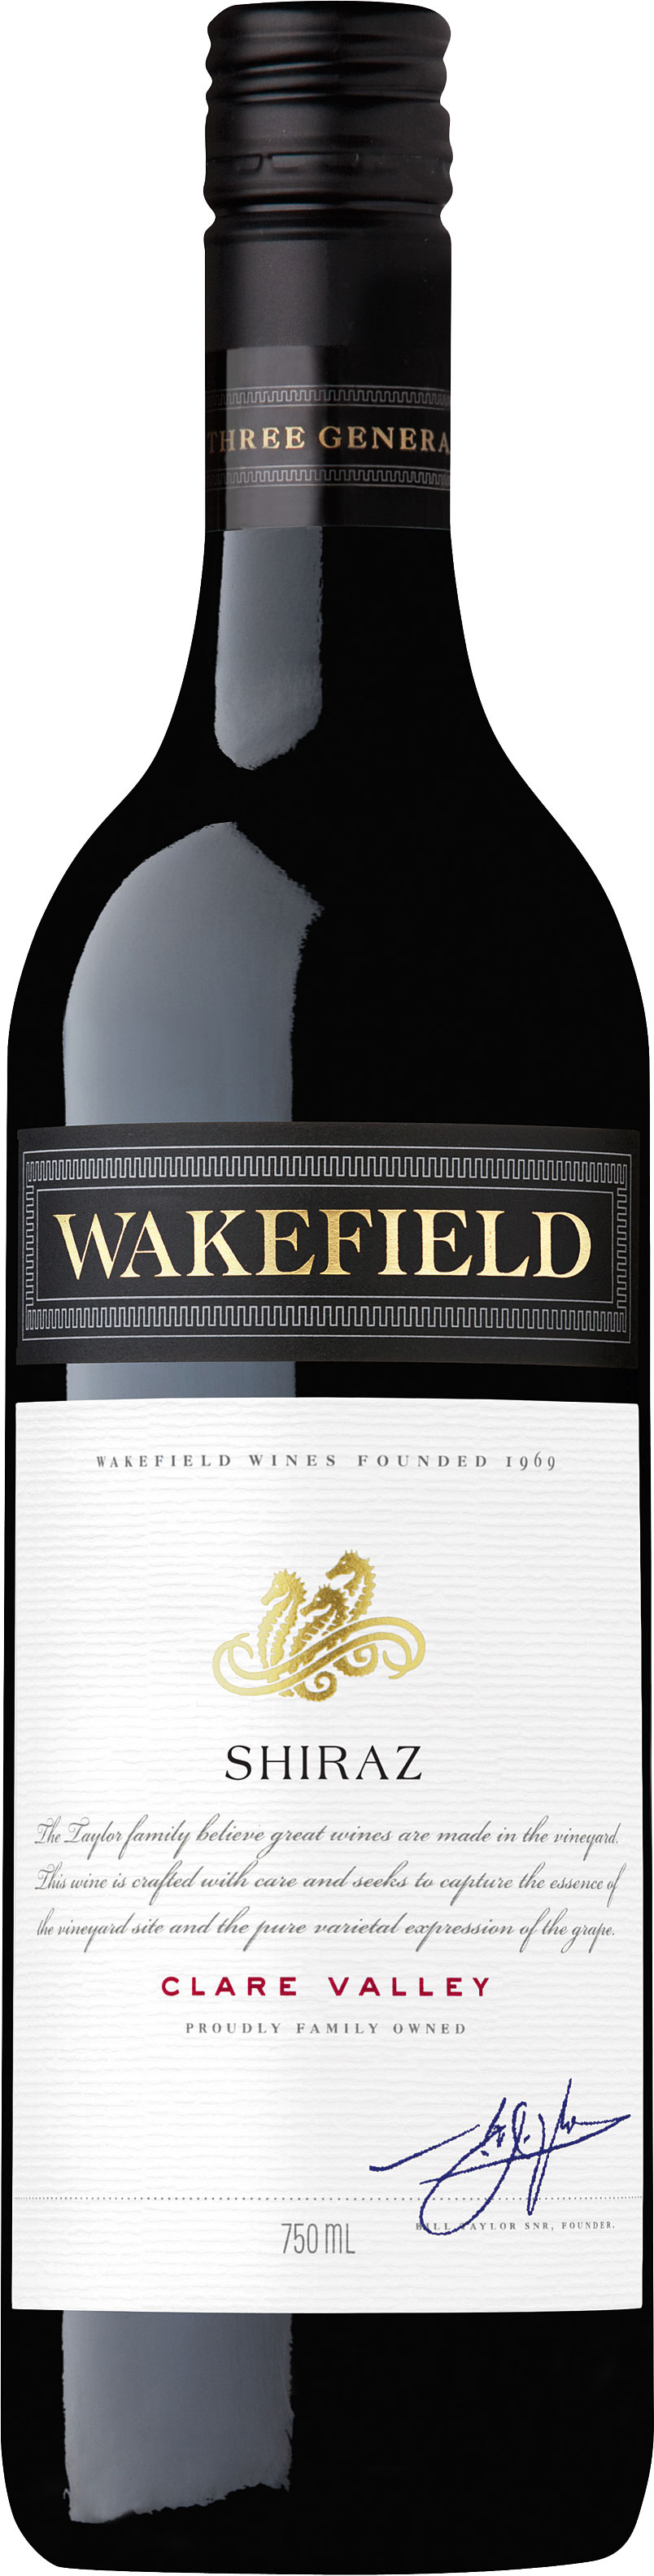 Wakefield Wines - Wakefield Estate Shiraz 2016 6x 75cl Bottles